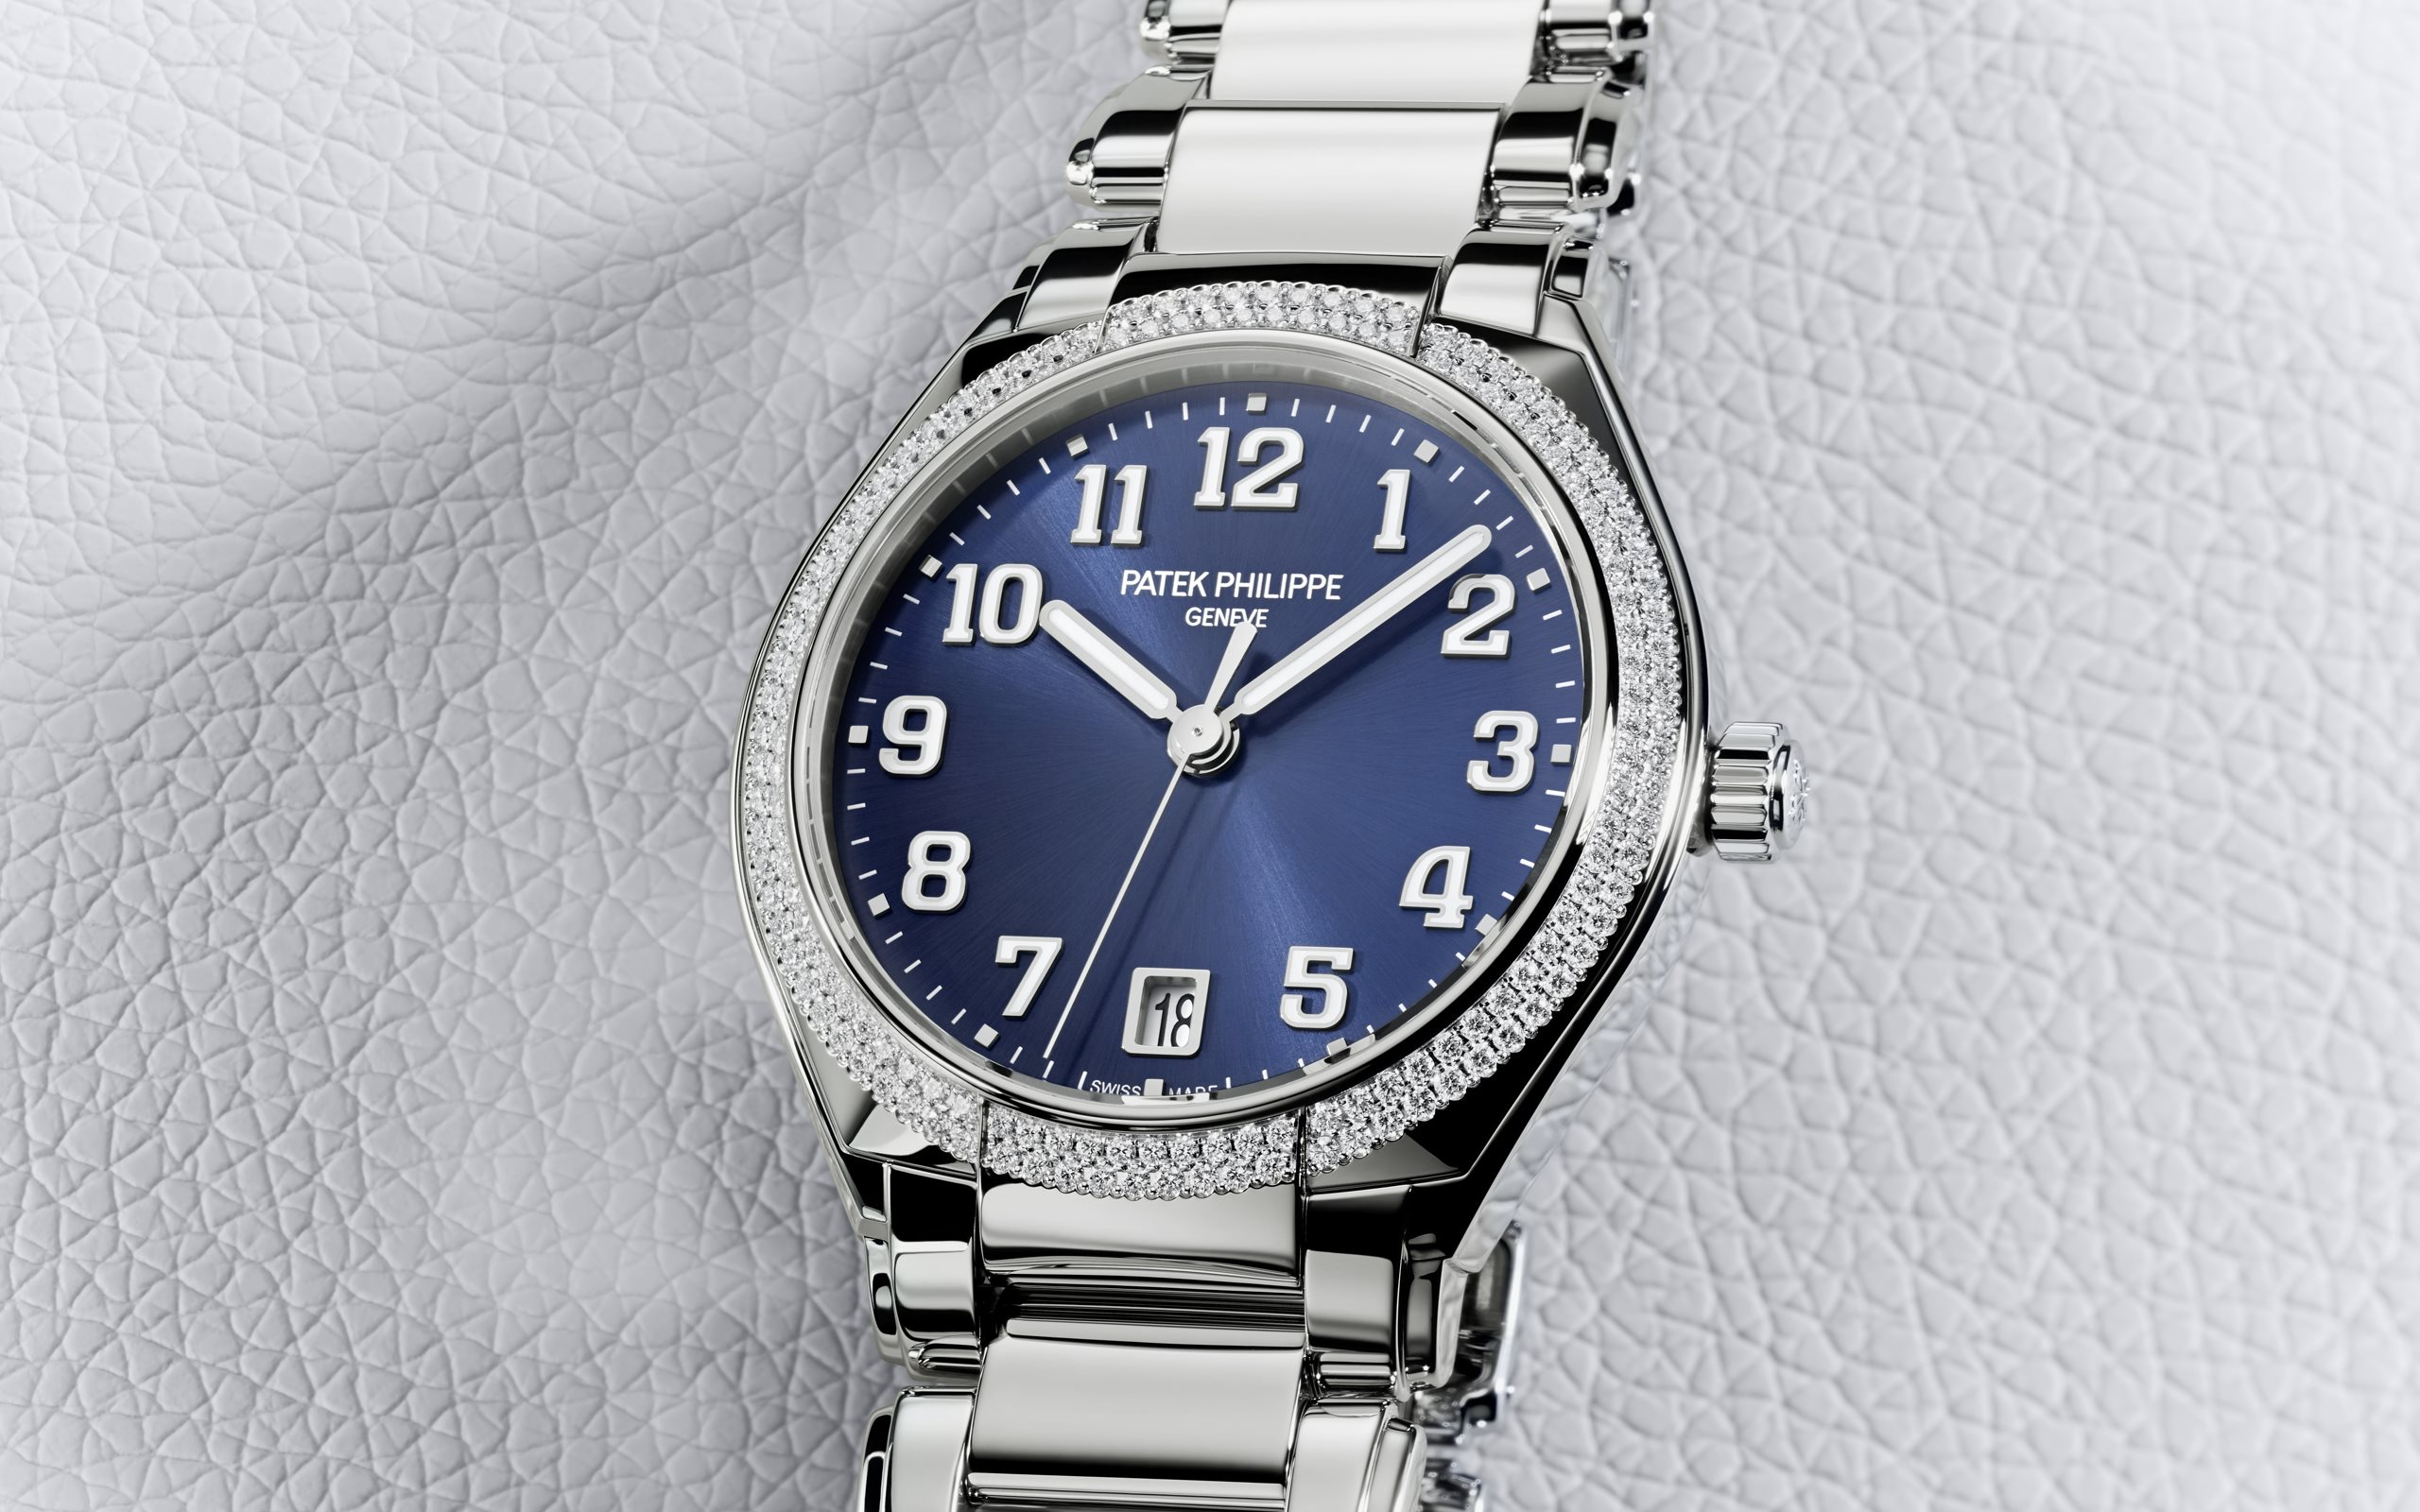 db615f4ec7a A Watch For All Occasions - Patek Philippe s Twenty~4 Automatic ...